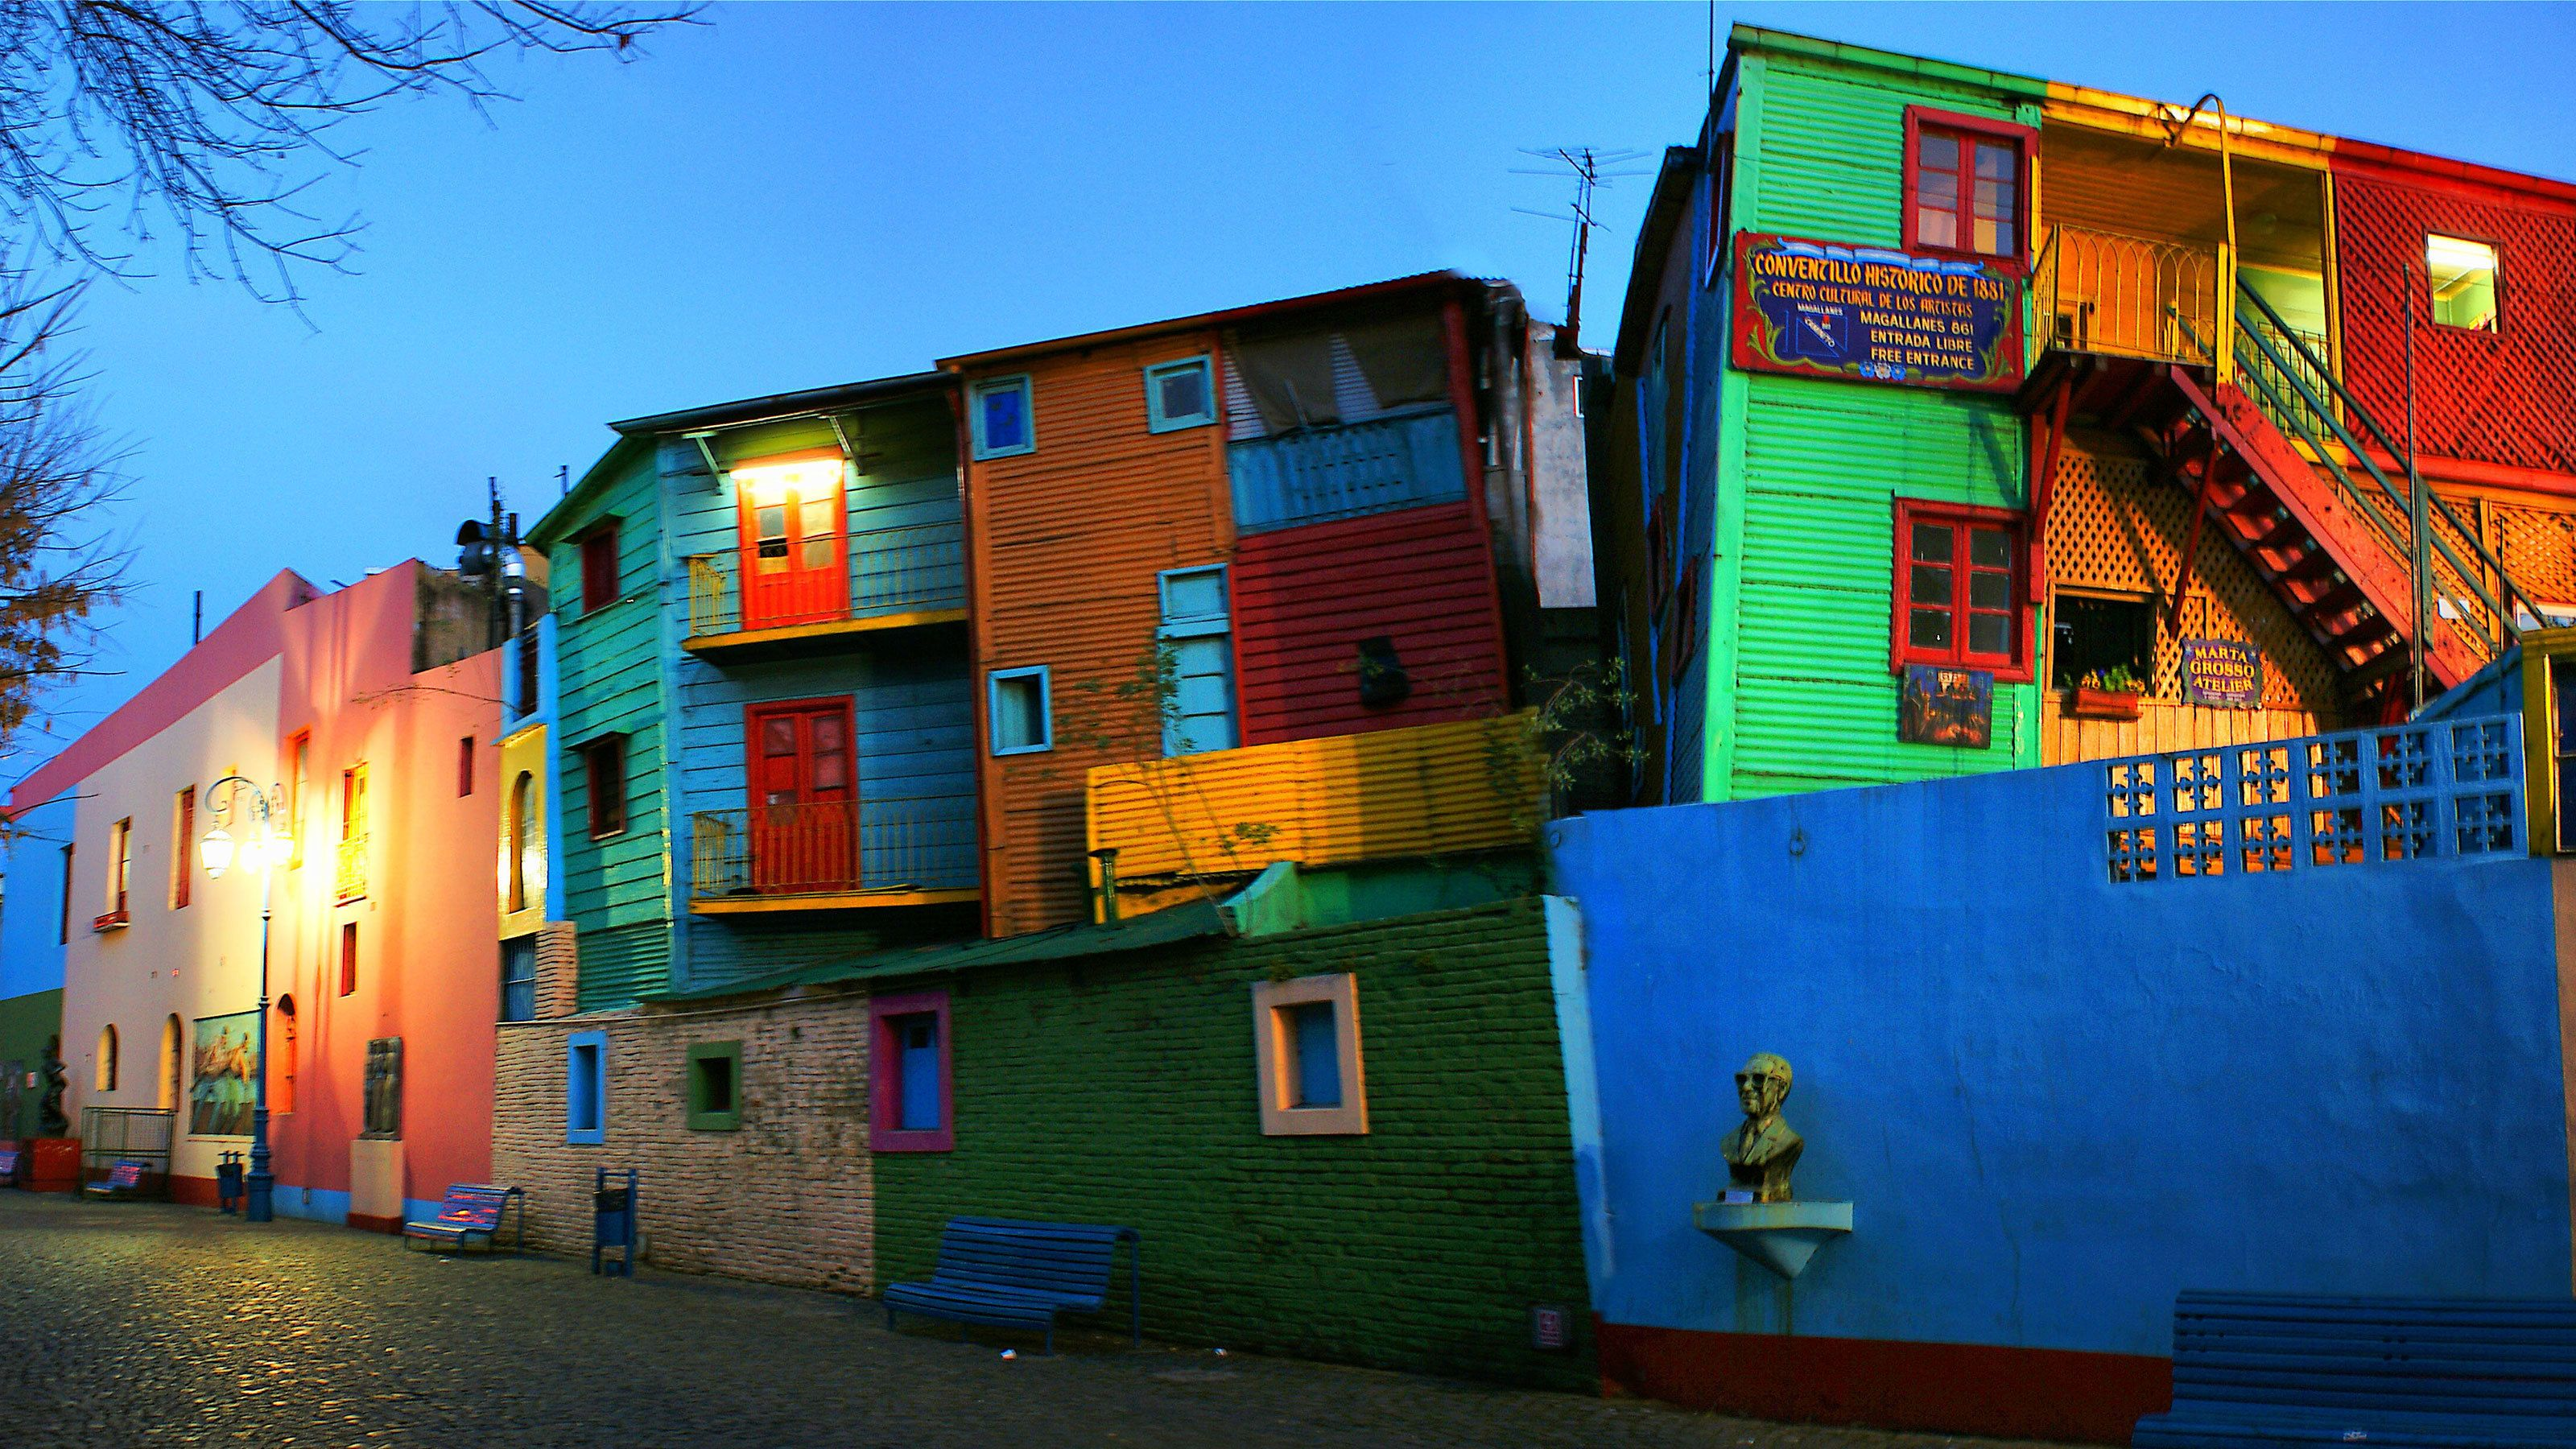 vibrant colored residential buildings in Argentina